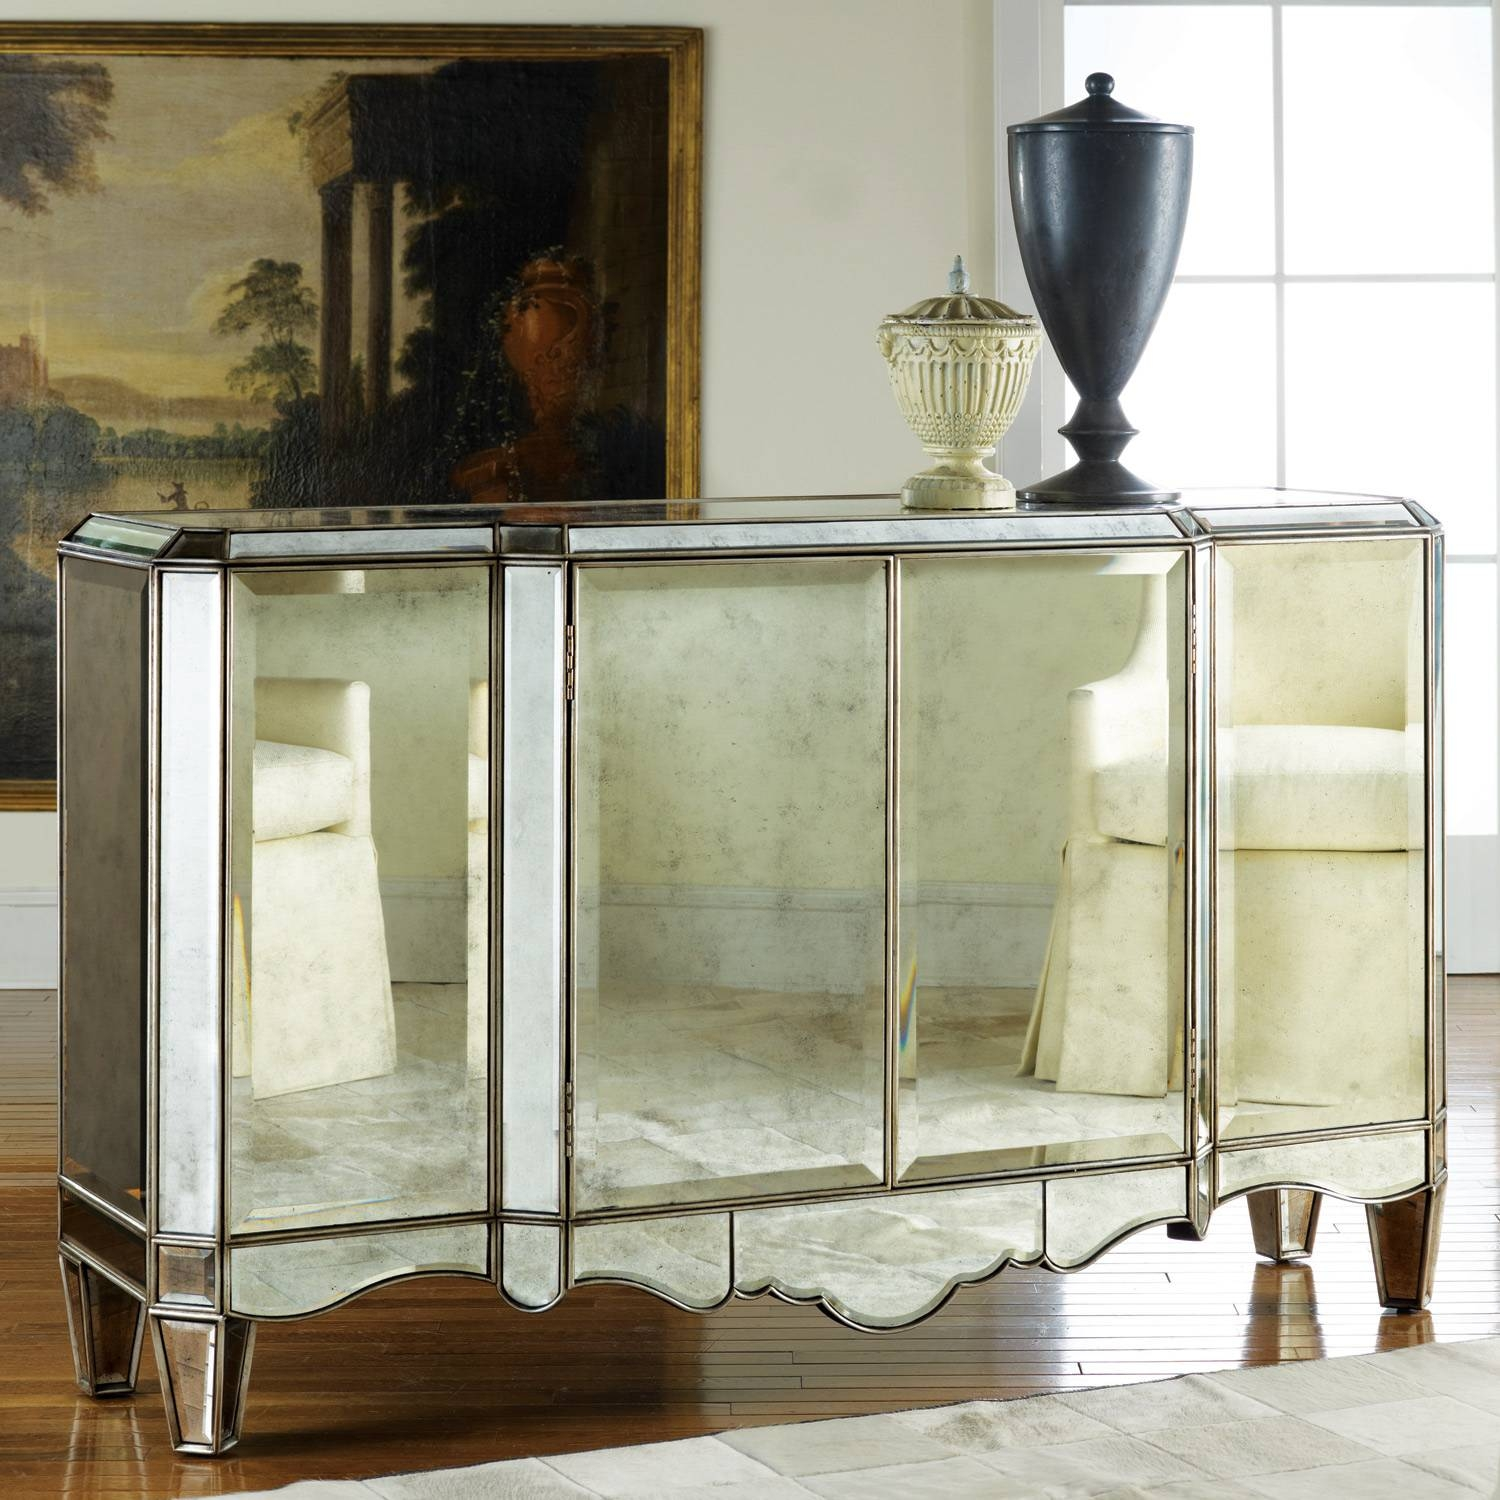 Modern History Home Mirrored Sideboard in Sideboards With Mirror (Image 21 of 30)